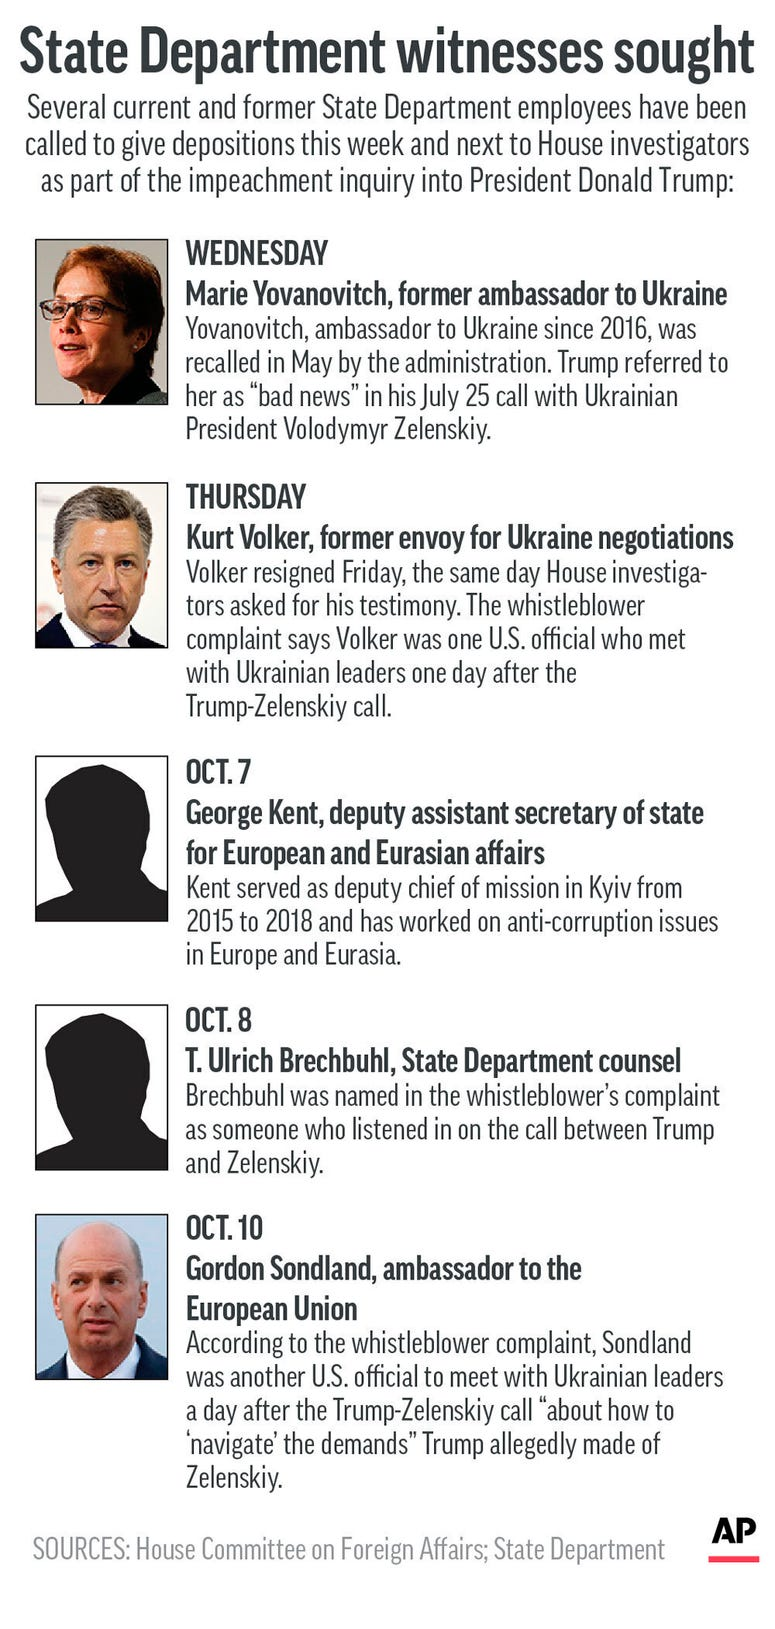 Graphic shows current and former State Department officials called to give depositions in Trump impeachment inquiry.